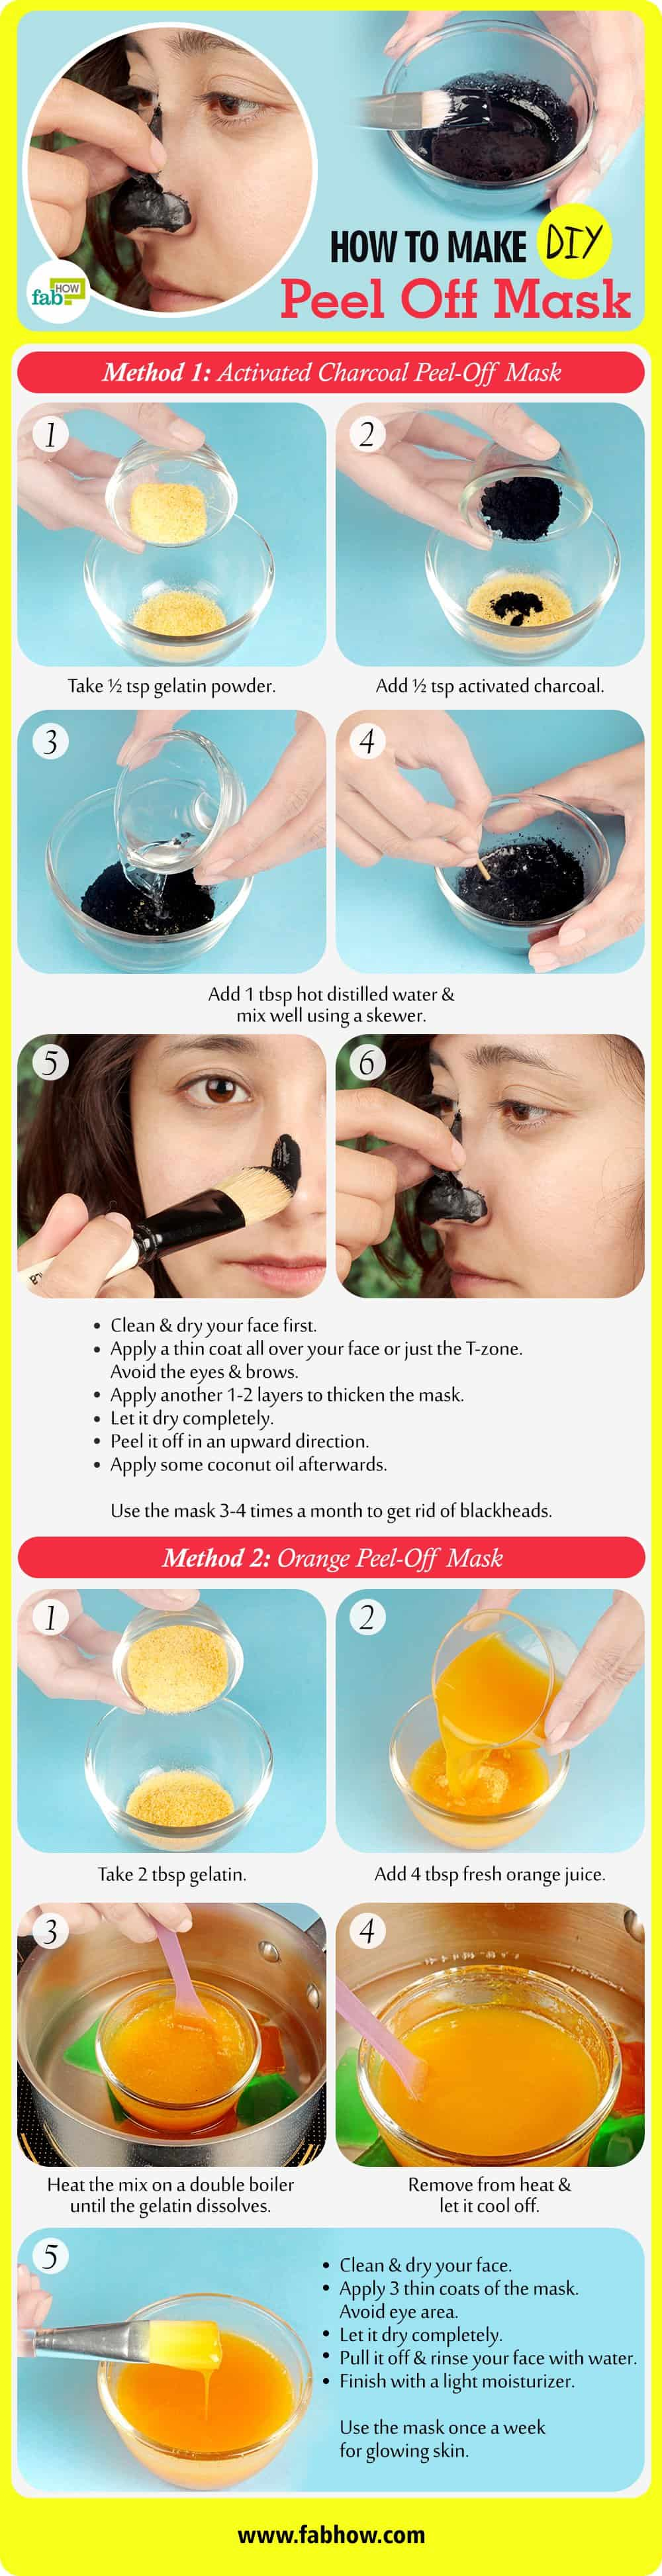 how to make DIY peel-off masks summary